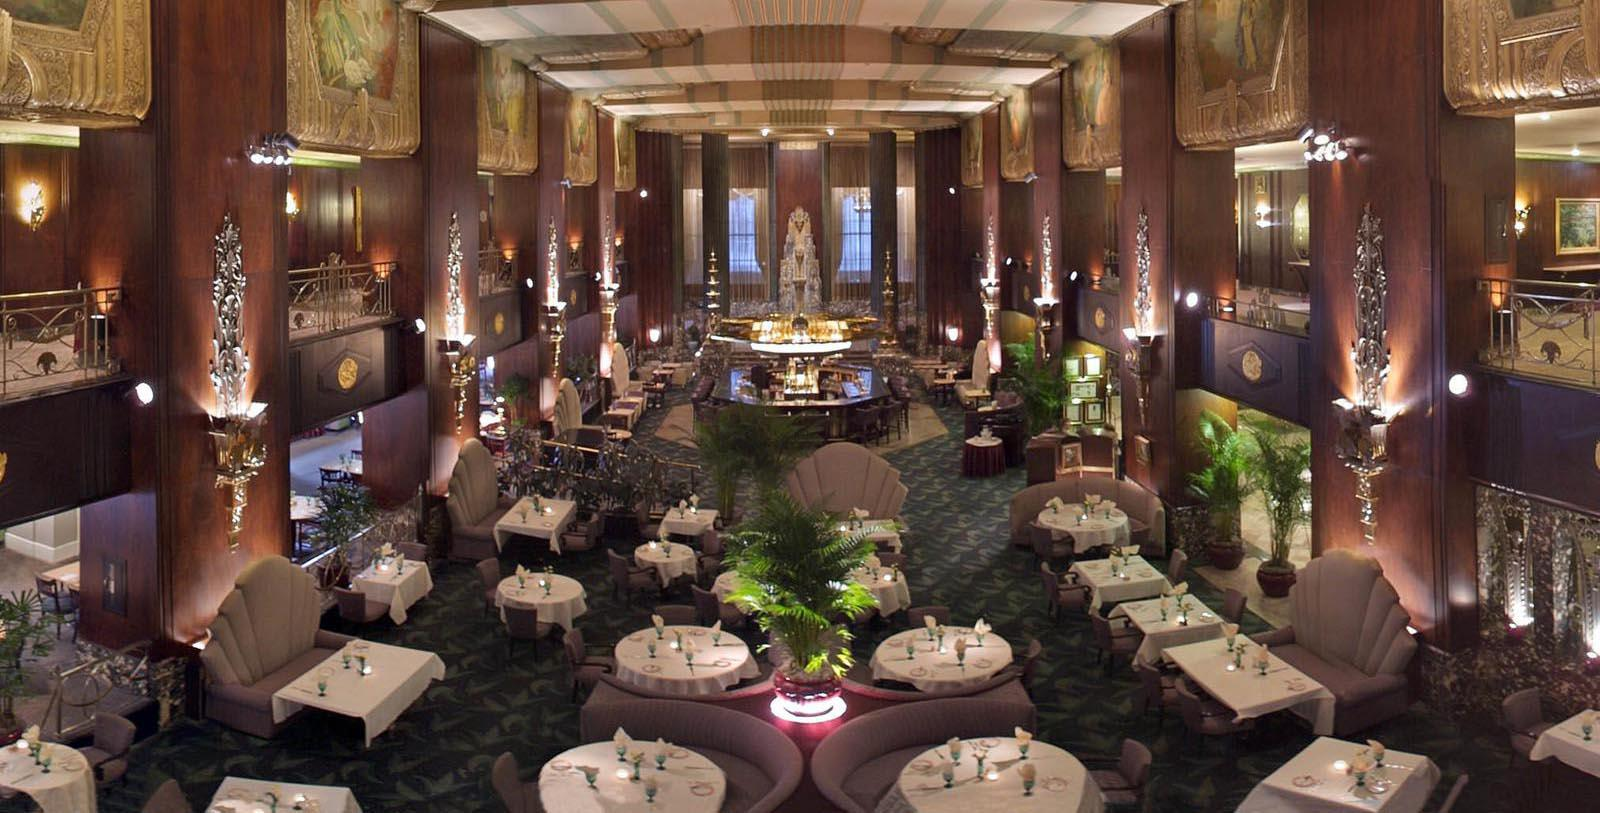 Image of Hall of Mirrors at the Hilton Cincinnati Netherland Plaza in Ohio.